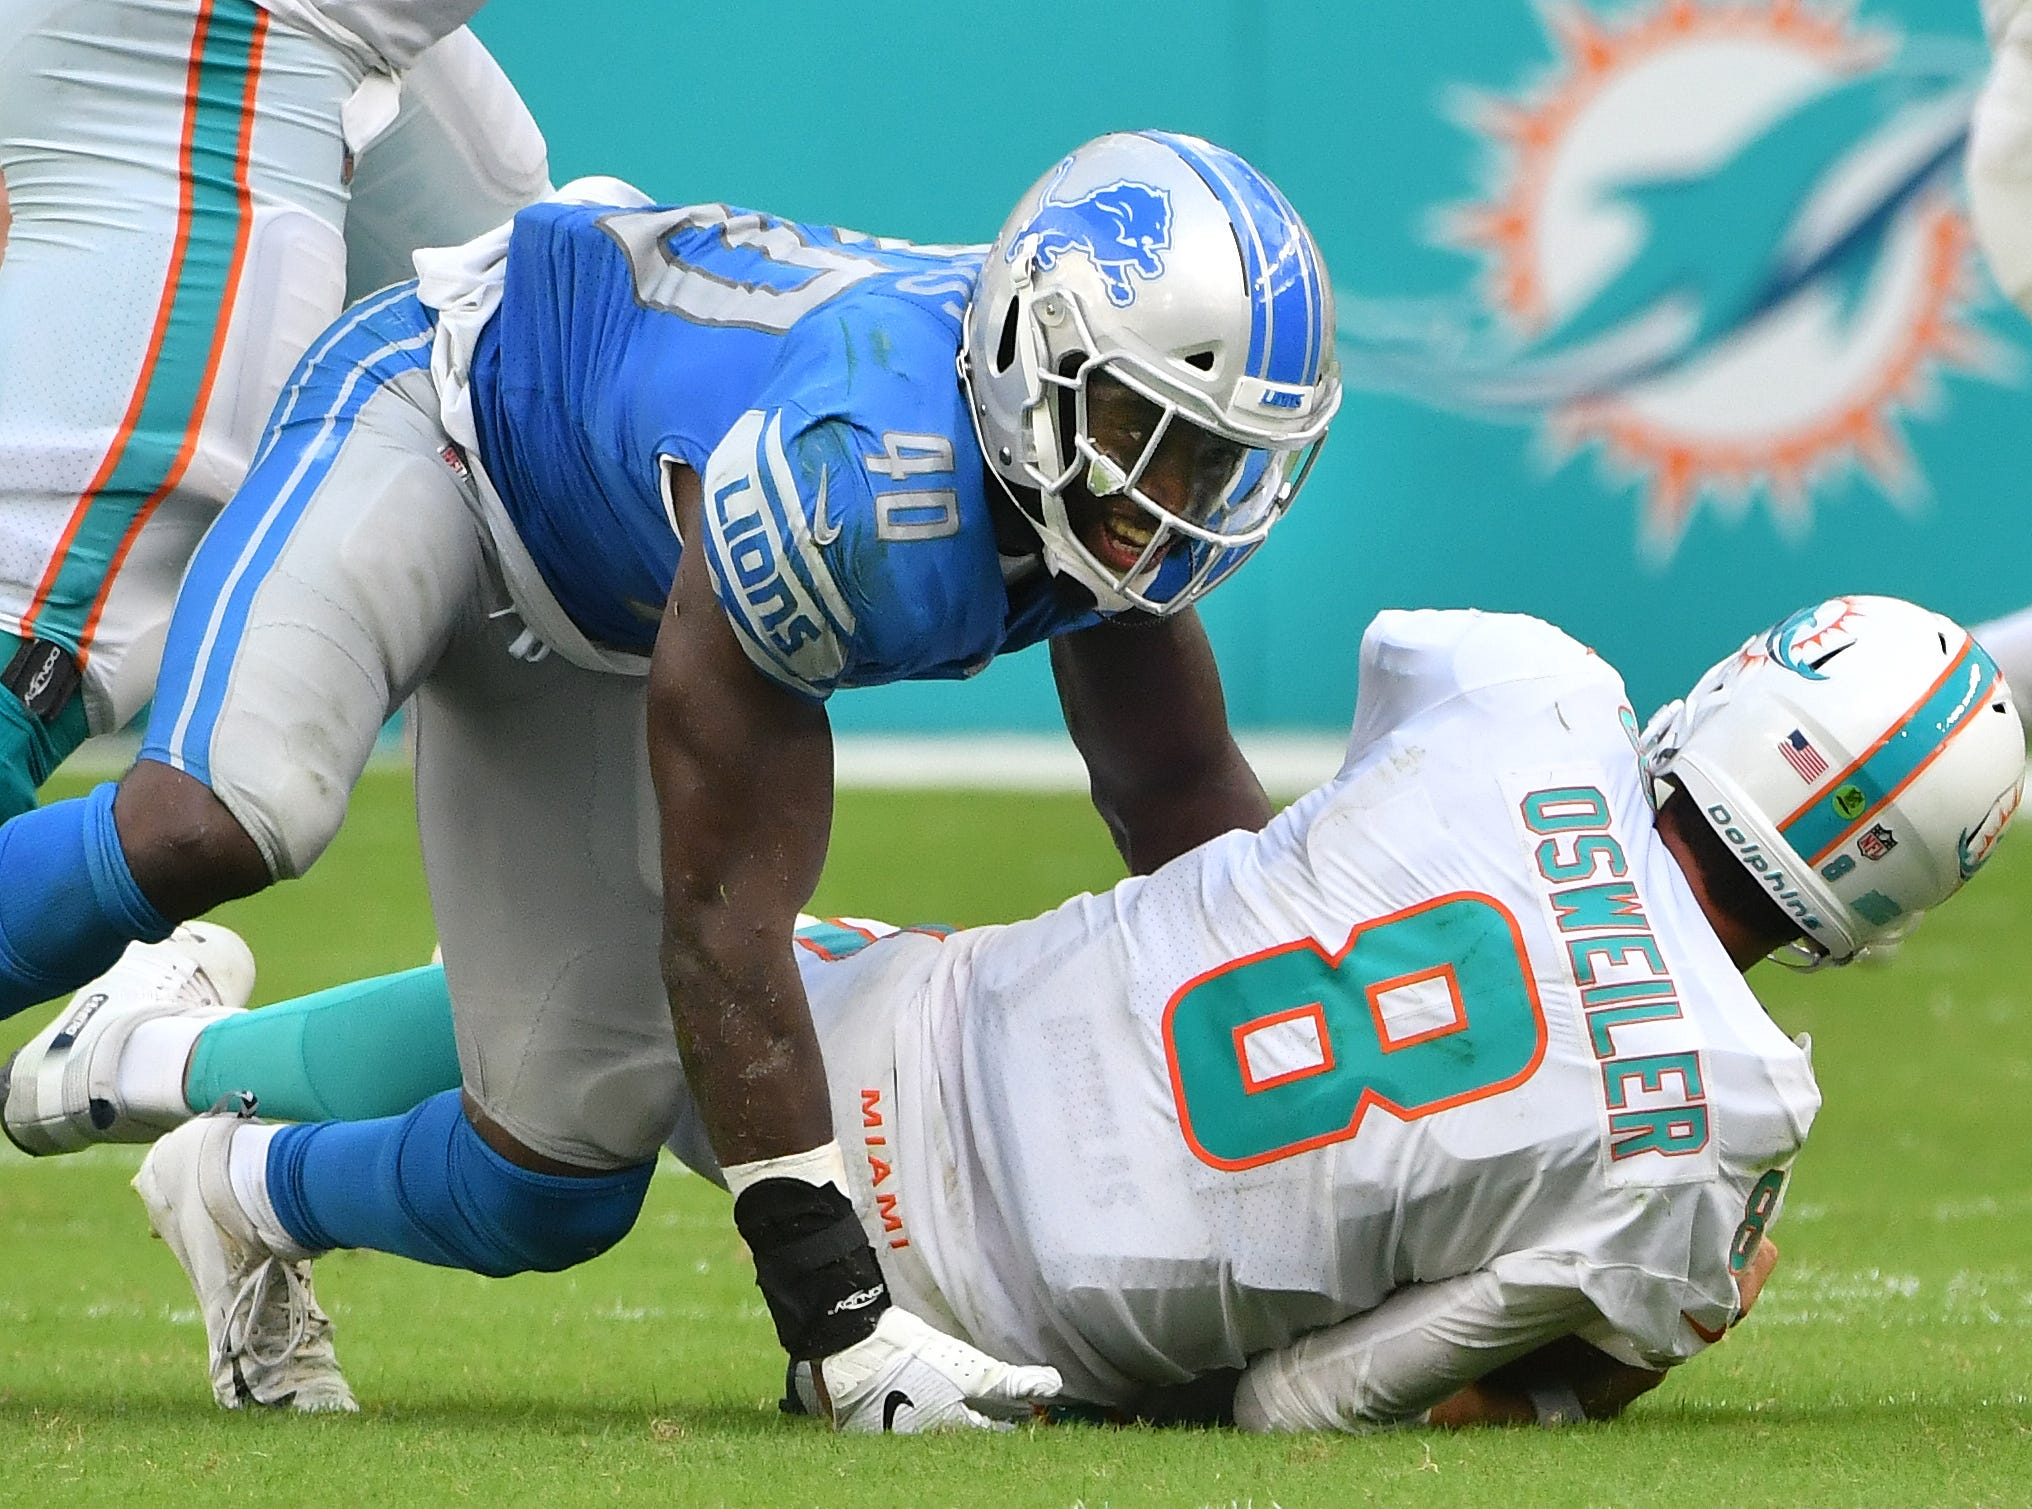 LB Jarrad Davis: Davis hasn't taken the steps in his development you would have expected for a player so committed to his craft. The coverage has been better this season, especially as of late, but it would be unreasonable to call the overall body of work good. And an argument could be made that his run defense, which should be his bread and butter, has been a bigger weakness. He leads the team with nine missed tackles. Where Davis has thrived is as a pass rusher. He's been highly effective when asked to blitz. Grade: D+